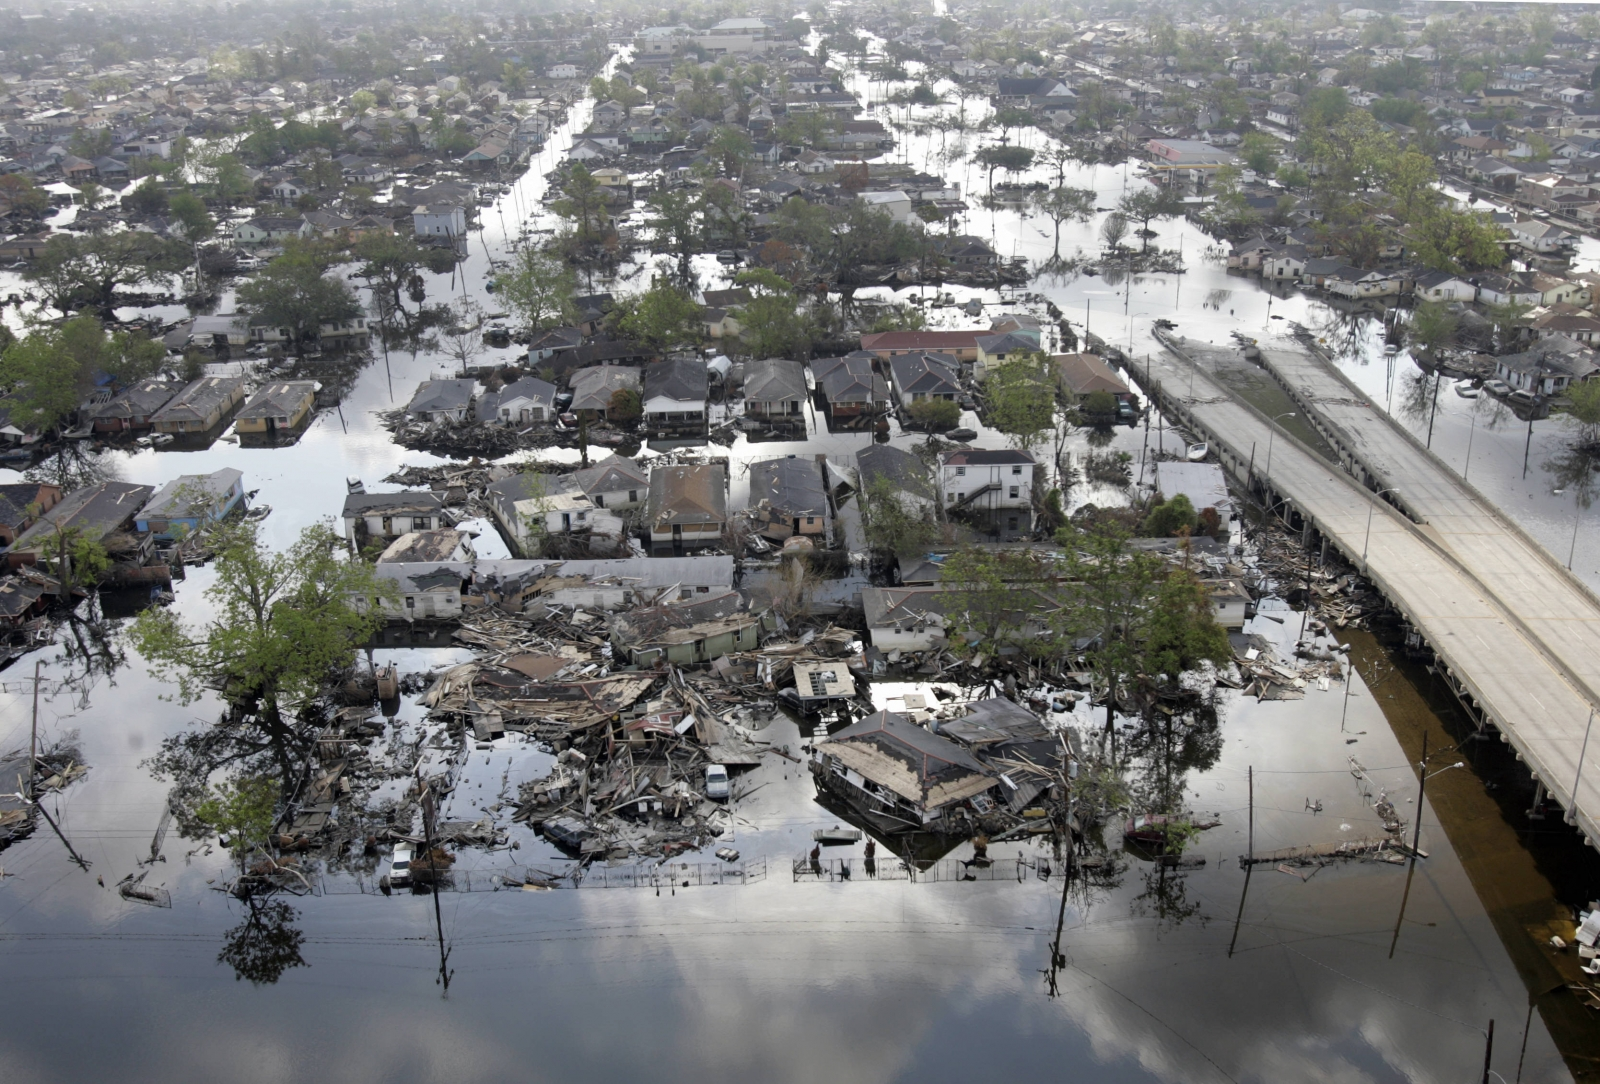 hurricane katrina 10 years on why was it so destructive